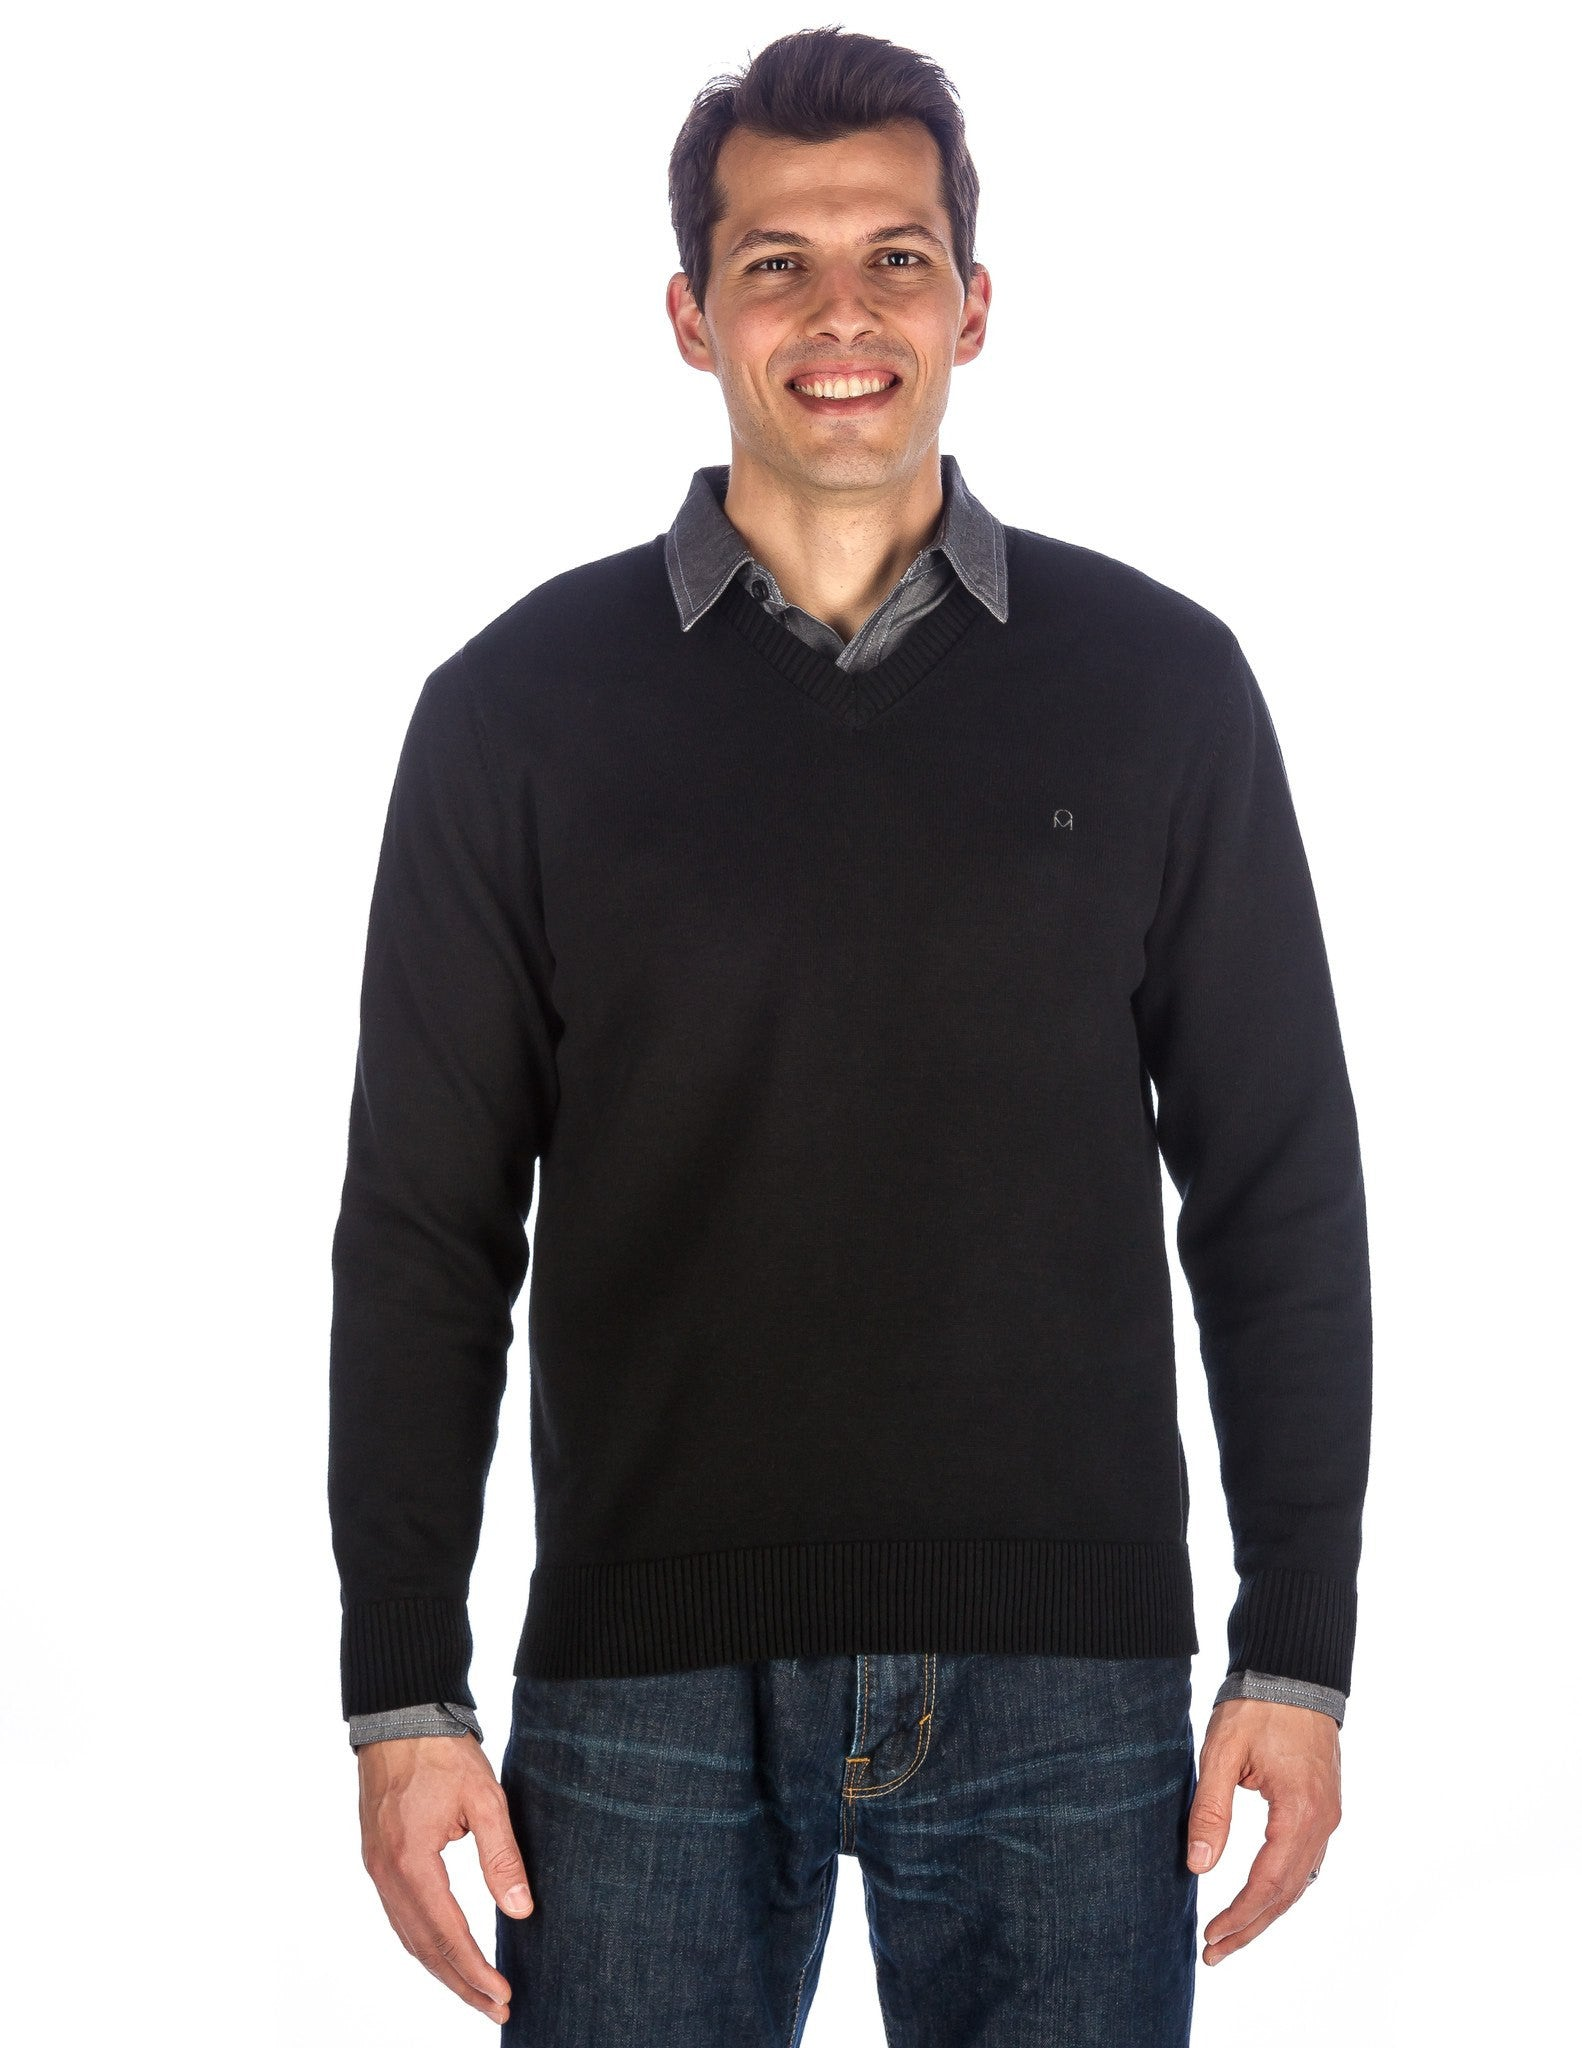 Men's 100% Cotton V-Neck Essential Sweater